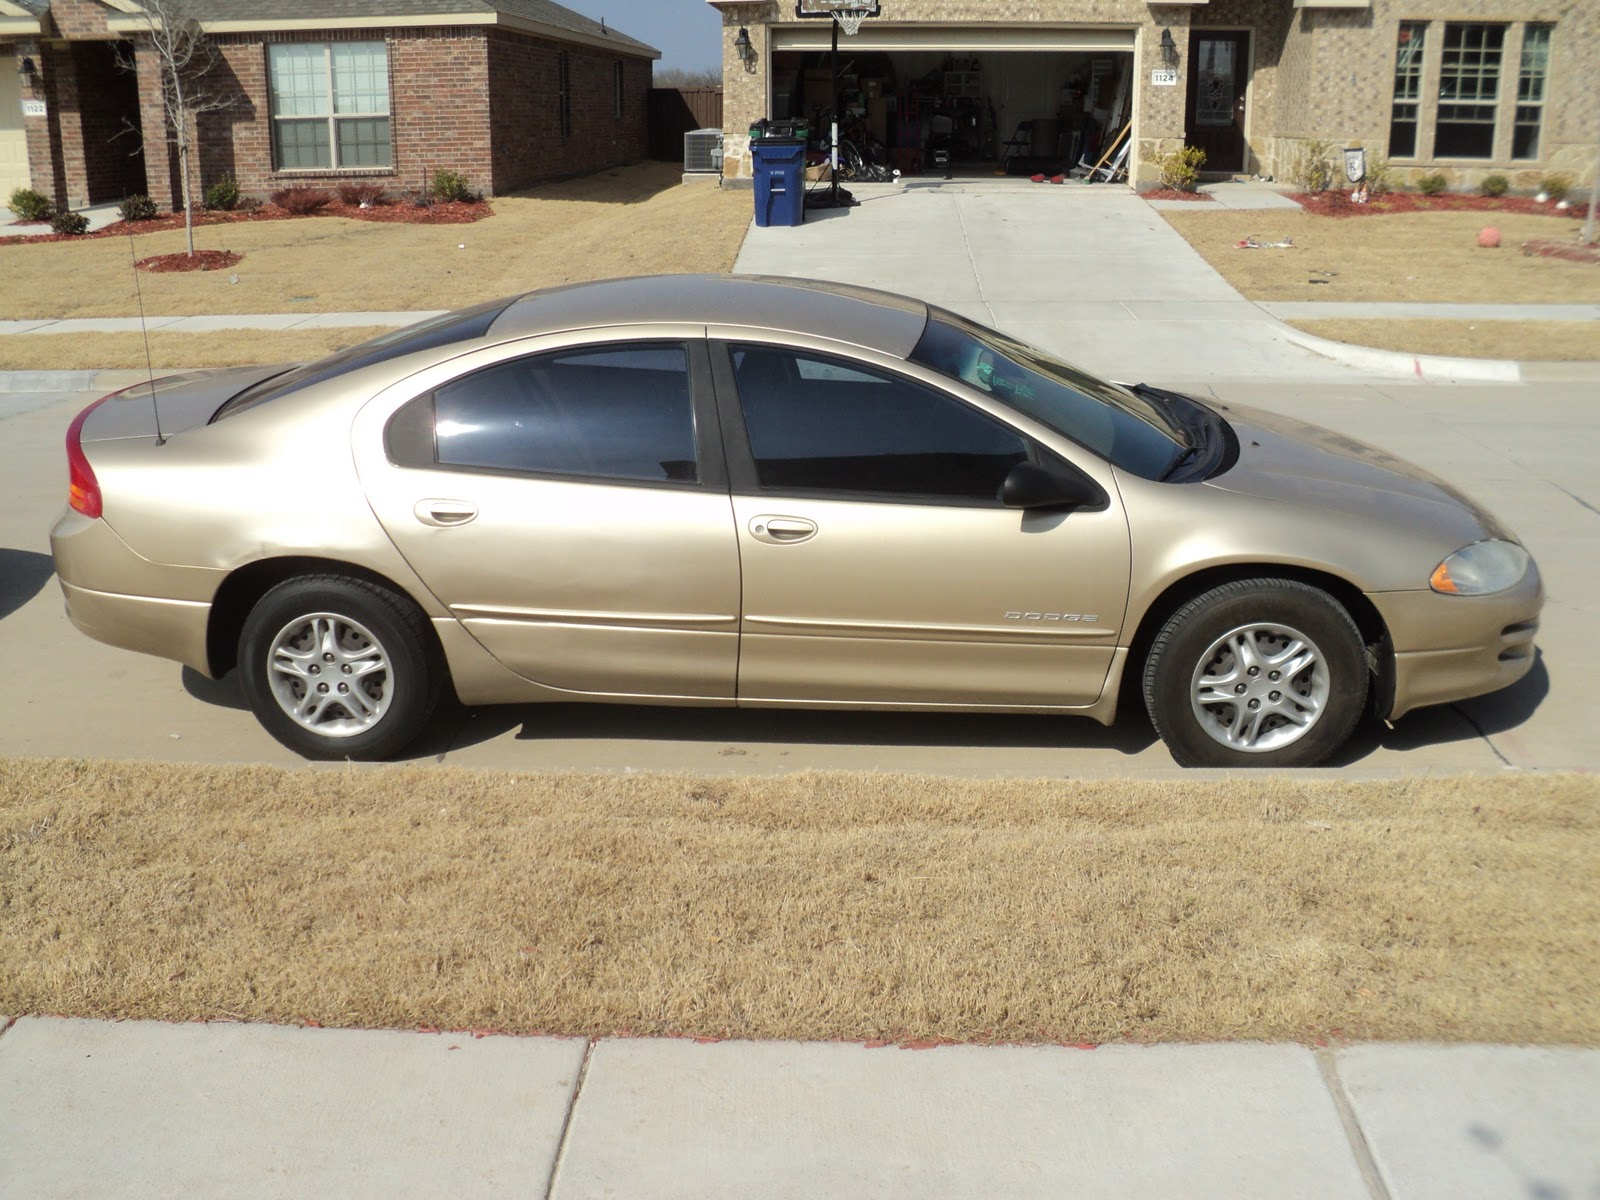 1999 dodge intrepid gold exterior tan gold cloth interior 97 xxx original miles good solid car for under 4000 asking 3995 [ 1600 x 1200 Pixel ]